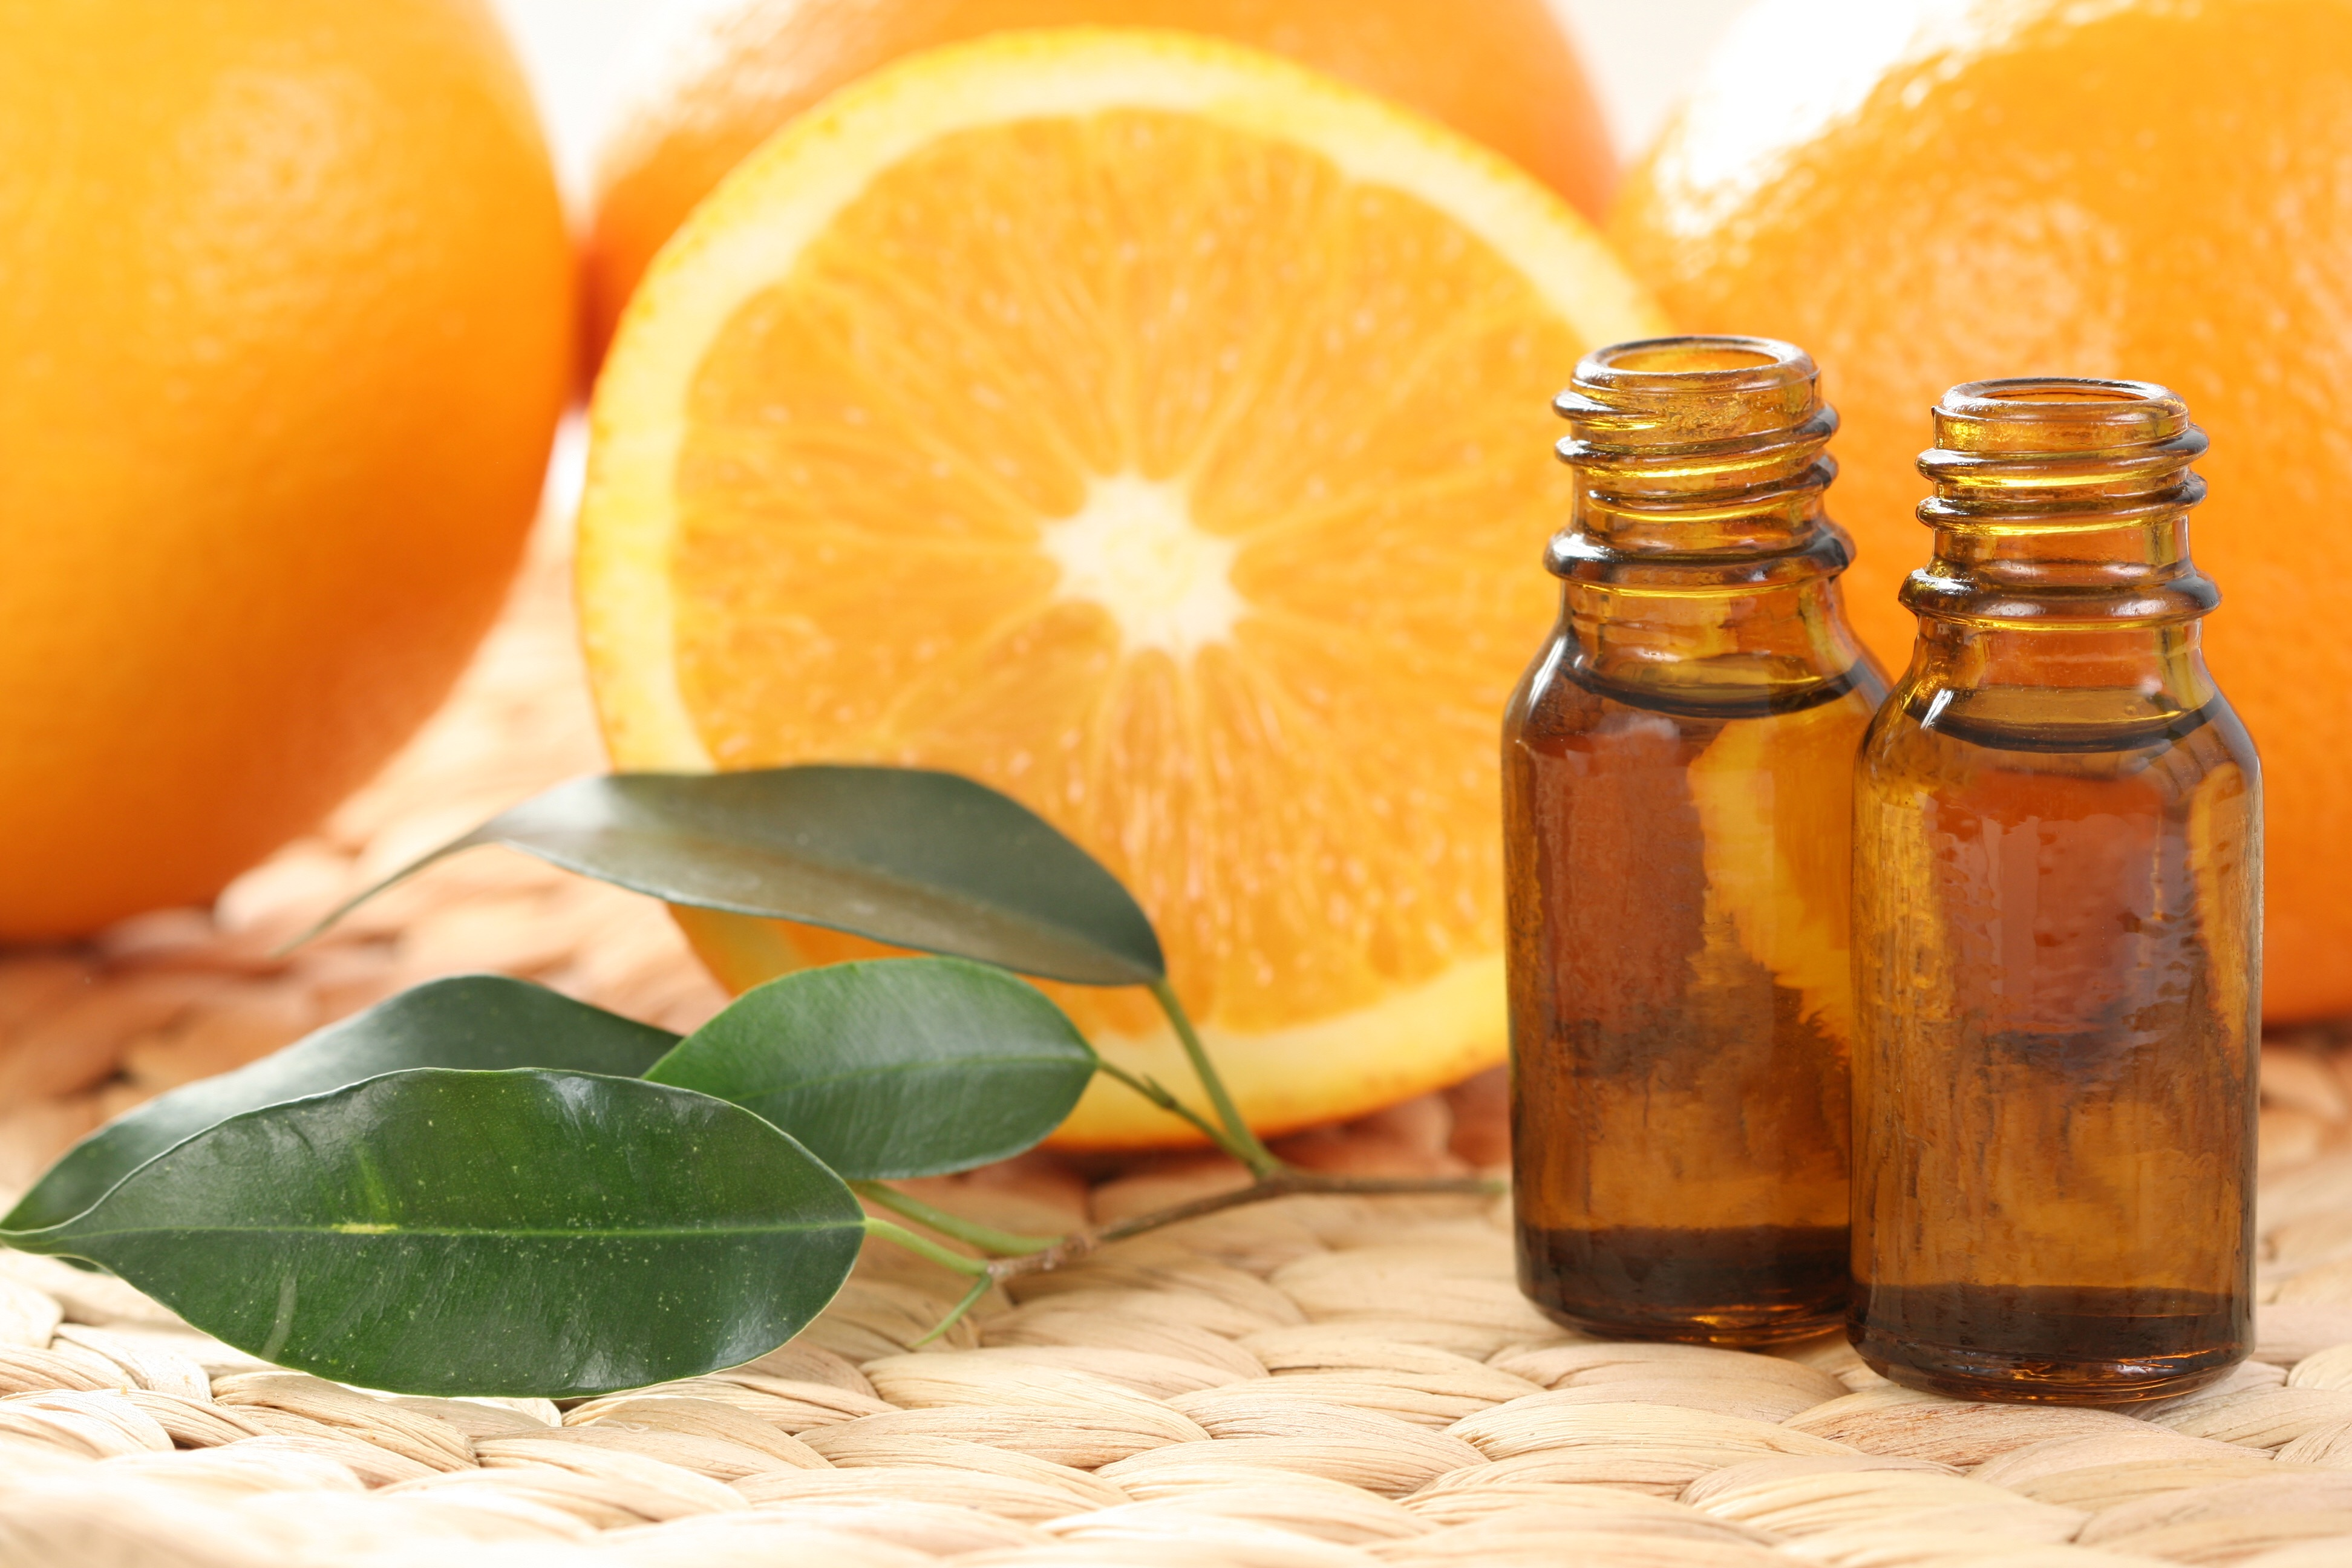 Best quality natural essential oils including Reconstitution Mandarin - Mandarin Orange, Mandarine, Mandarine Oil Yellow, and other fragrance & perfume oils at the most discount rates by BMV Fragrances in UP, India.